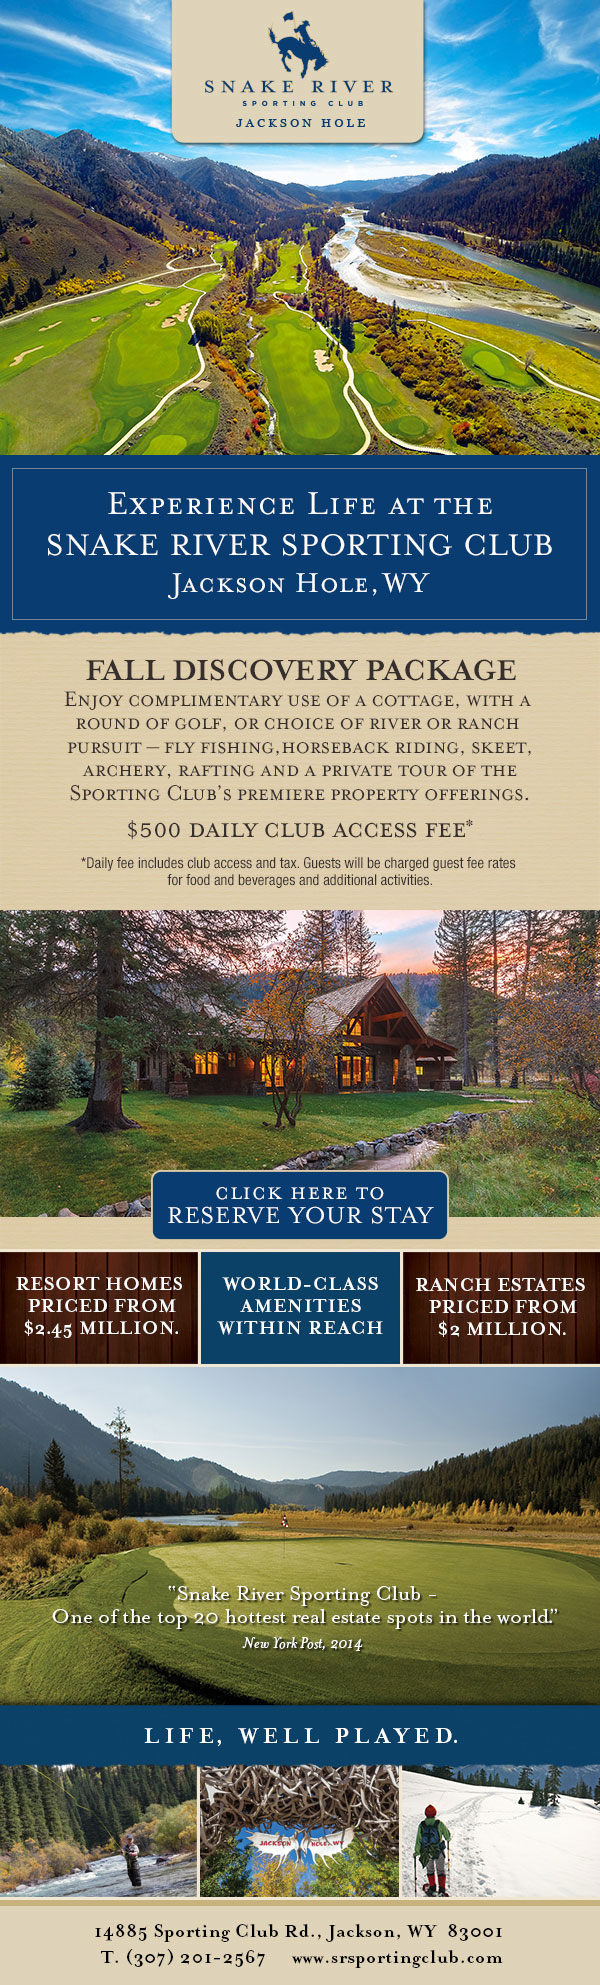 Snake River Sporting Club Fall Discovery Package Eblast